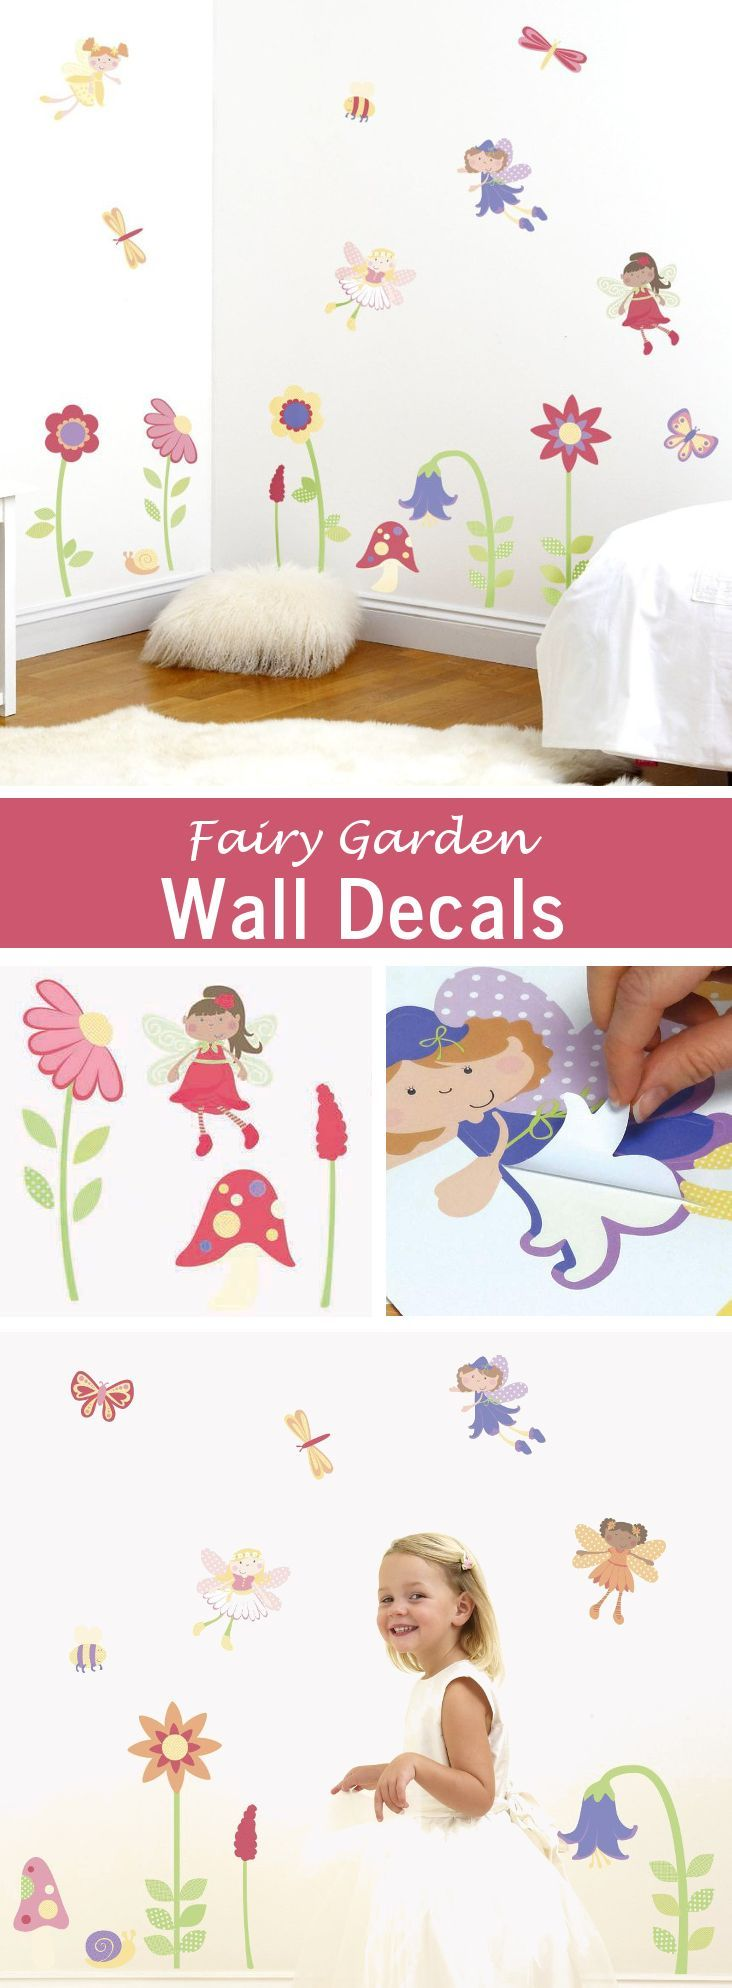 74 best girls room decor images on pinterest girl room decor decorate a beautiful girl s nursery or bedroom with flower and fairy bedroom decorations 30 pretty fairy garden wall decals will transform girls bedroom s